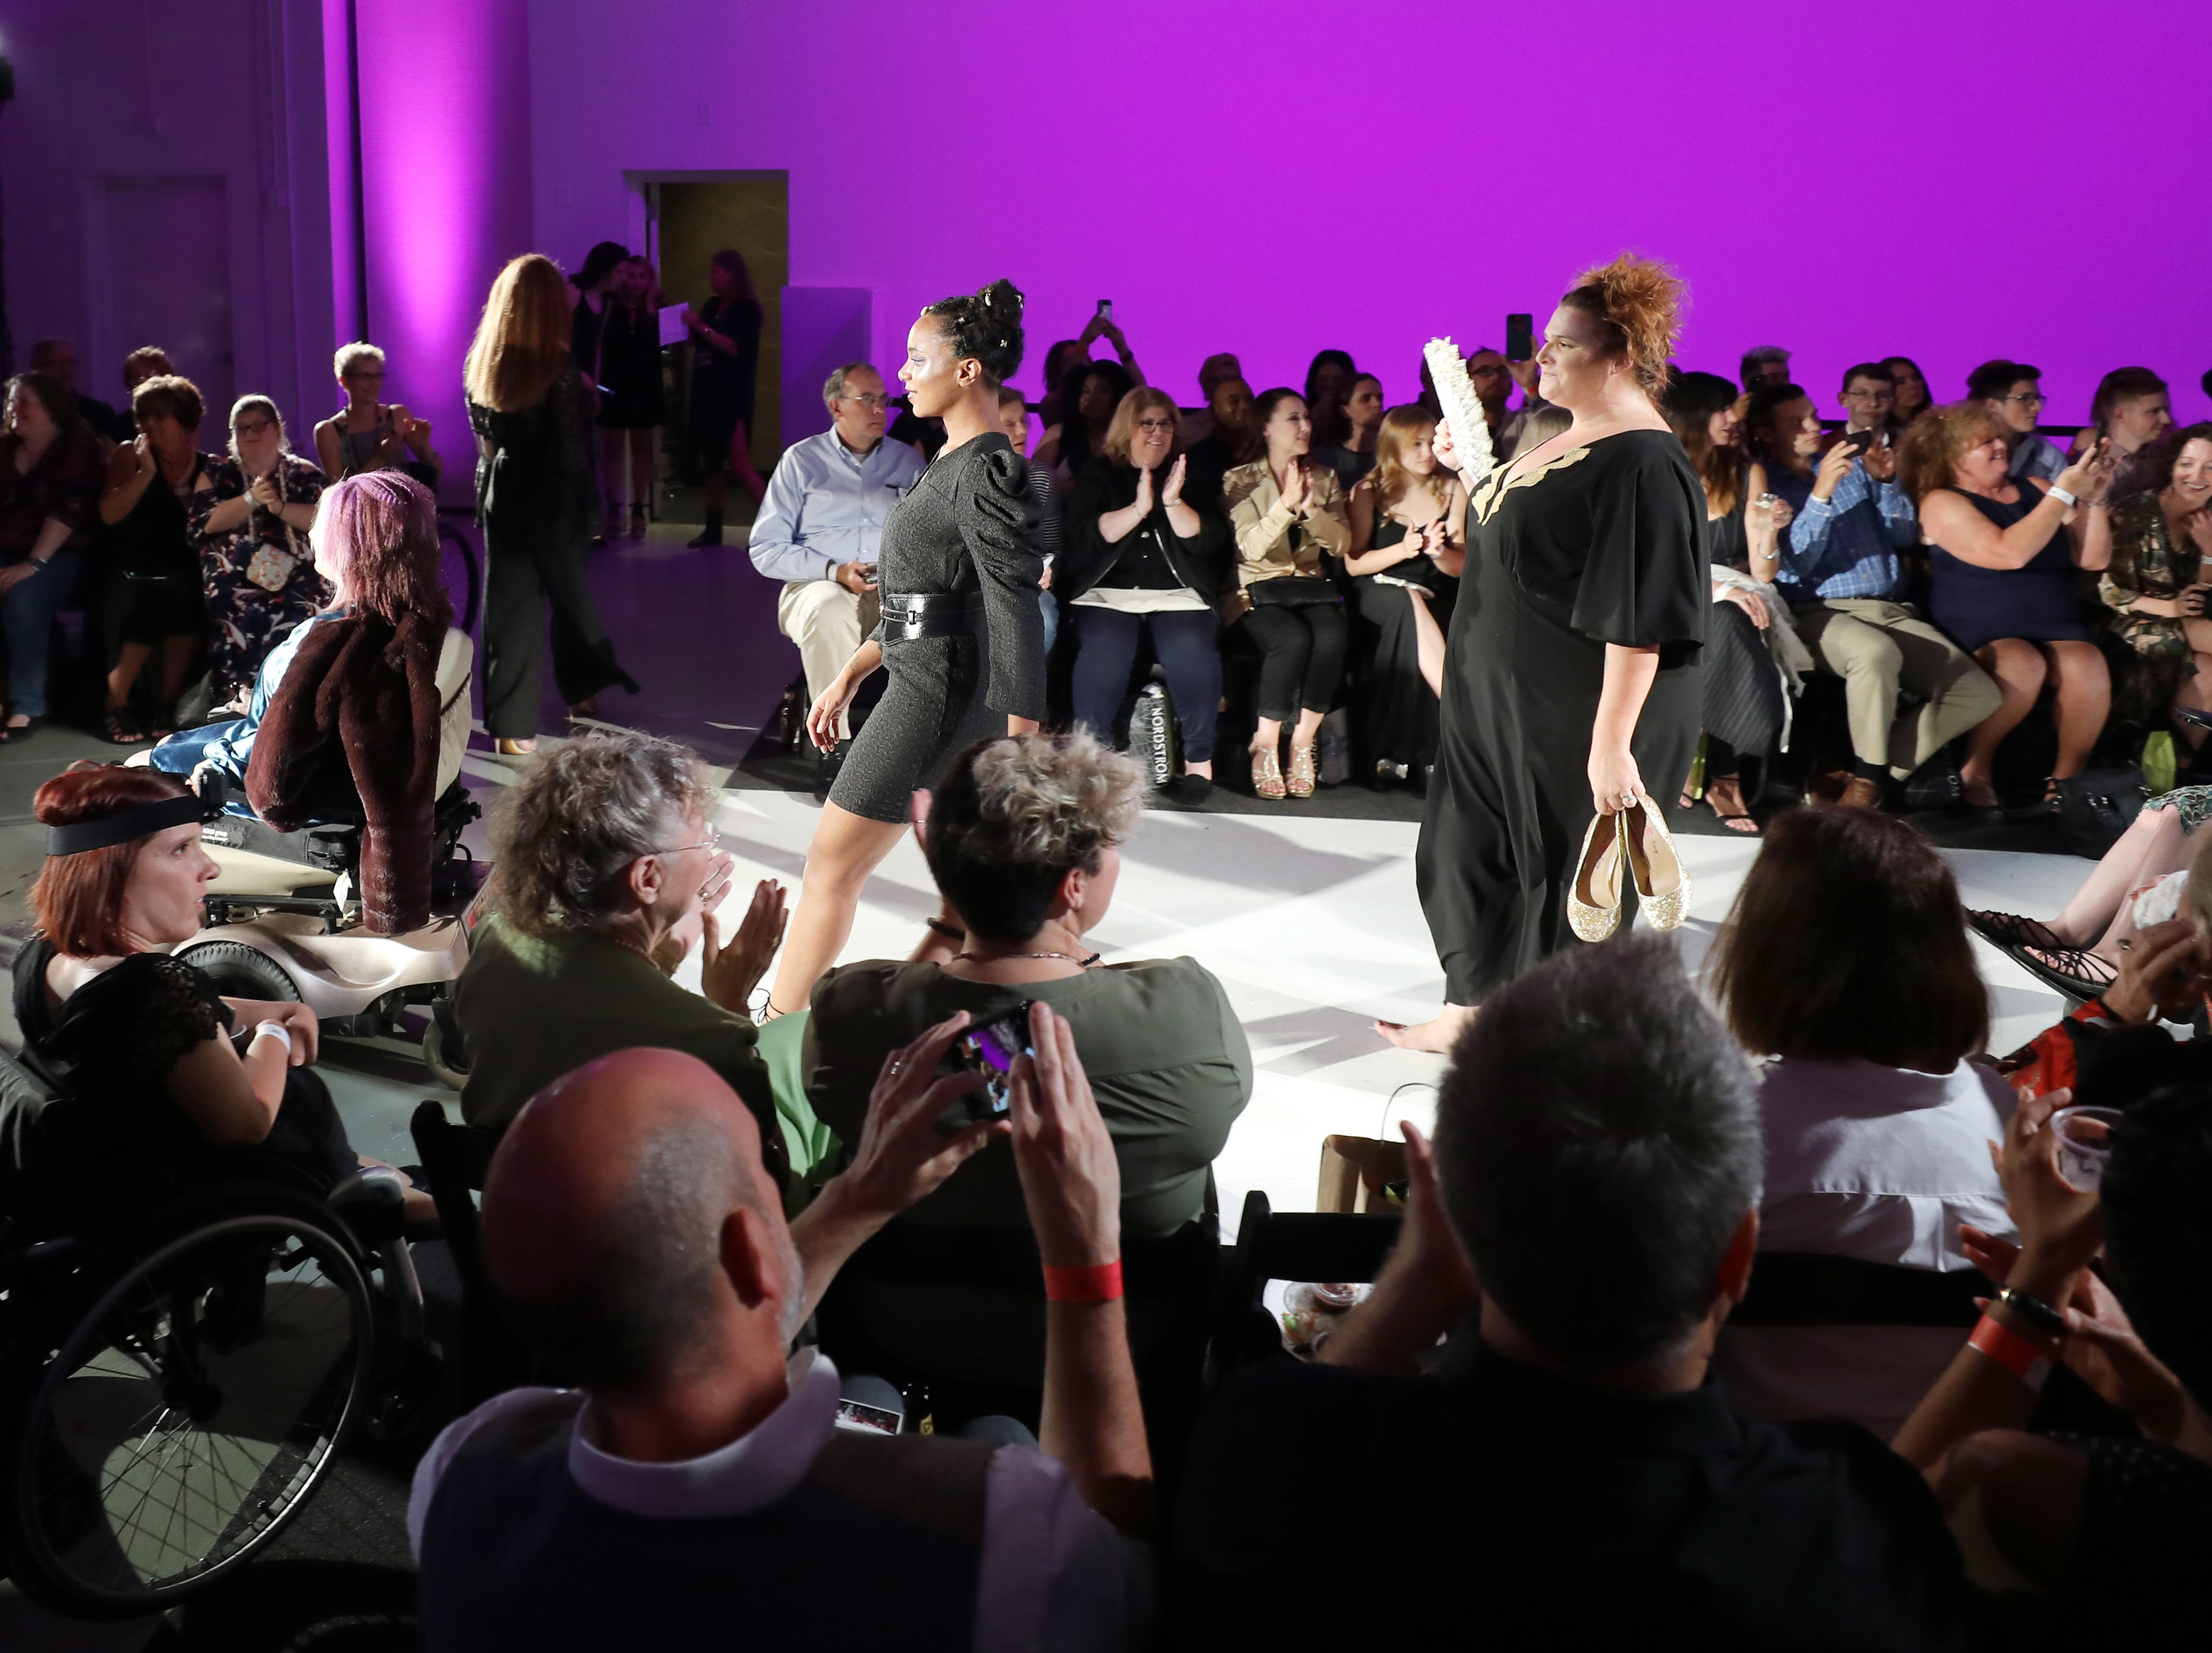 Models participate in the Boundless 2018 fashion show held at Studio 615 on Saturday, September 8, 2018.